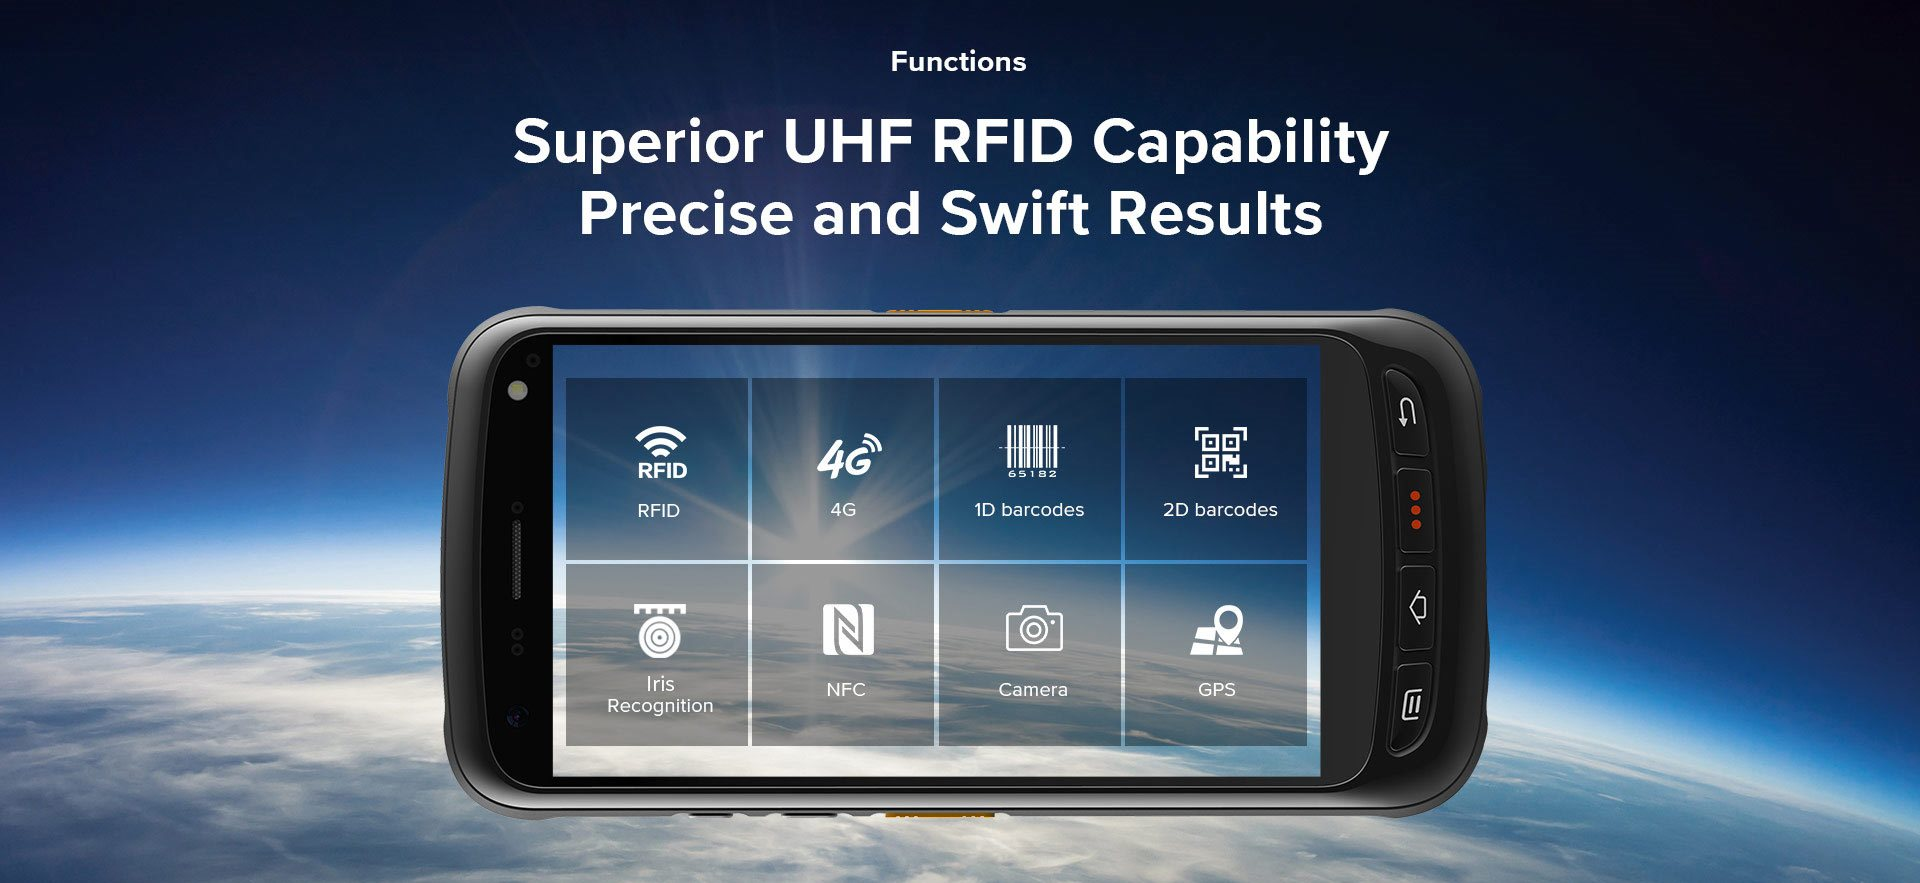 C71 - Android Industrial Mobile Computer RFID UHF - precisione